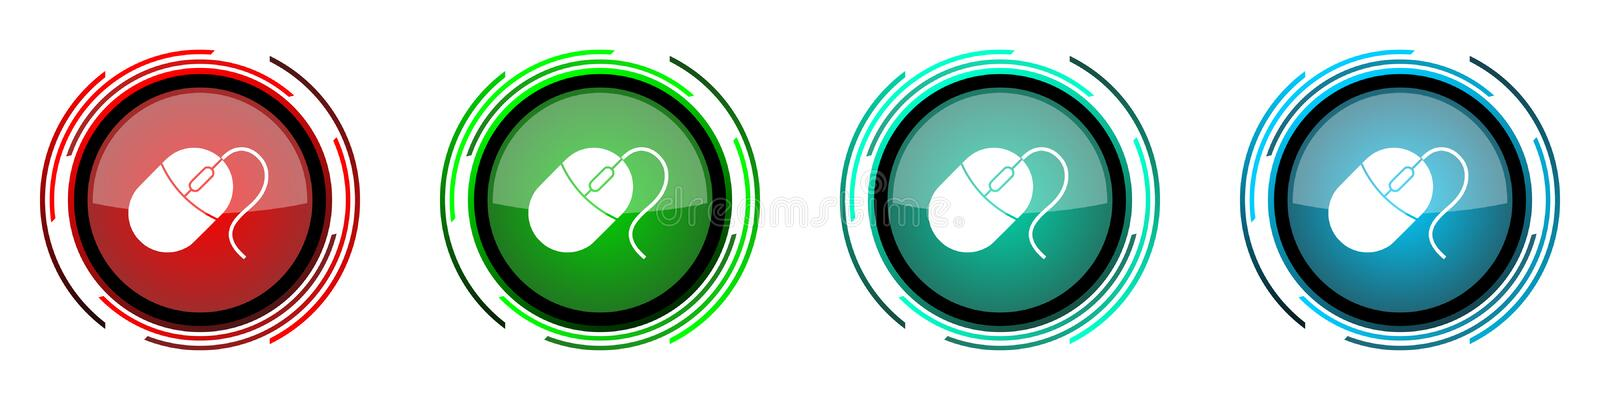 Mouse round glossy vector icons, set of buttons for webdesign, internet and mobile phone applications in four colors options. Isolated on white royalty free illustration